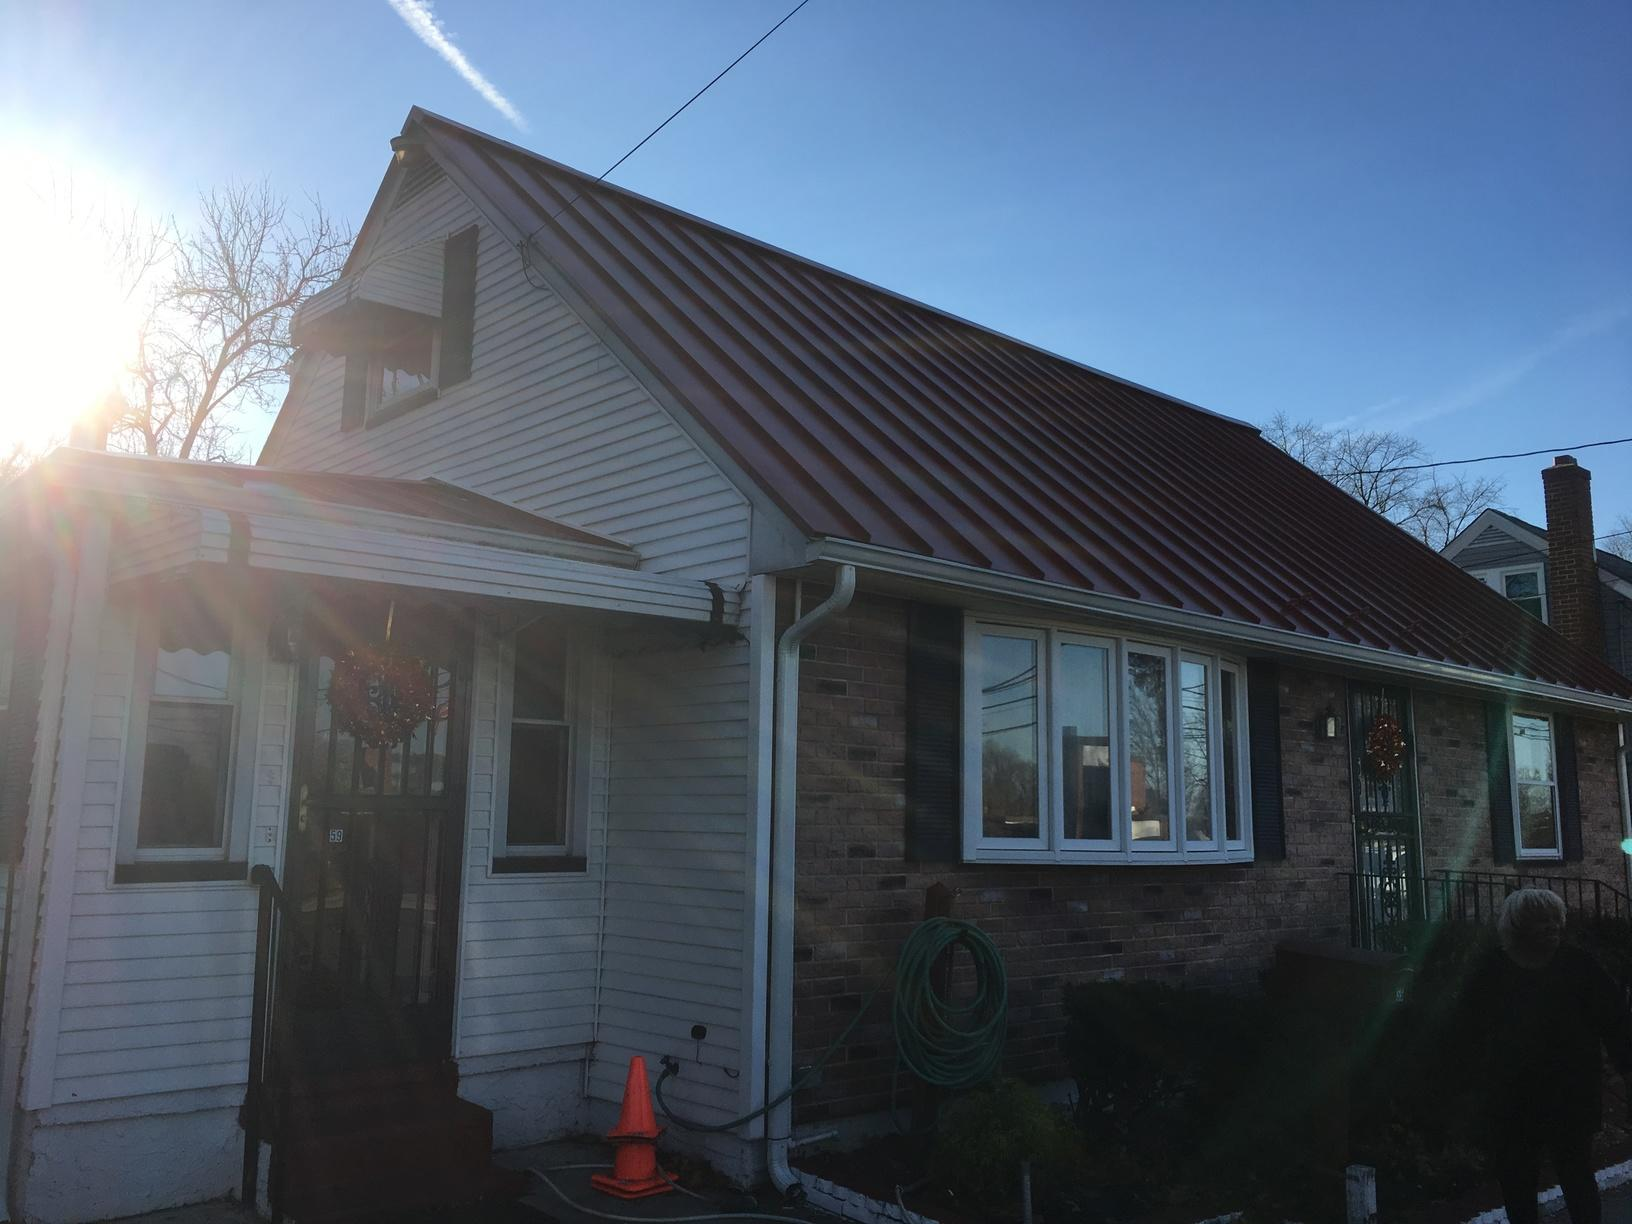 Drexel Terra Cotta Standing Seam Metal Roof with Snow Guards Installation in Hamilton Township, NJ - After Photo